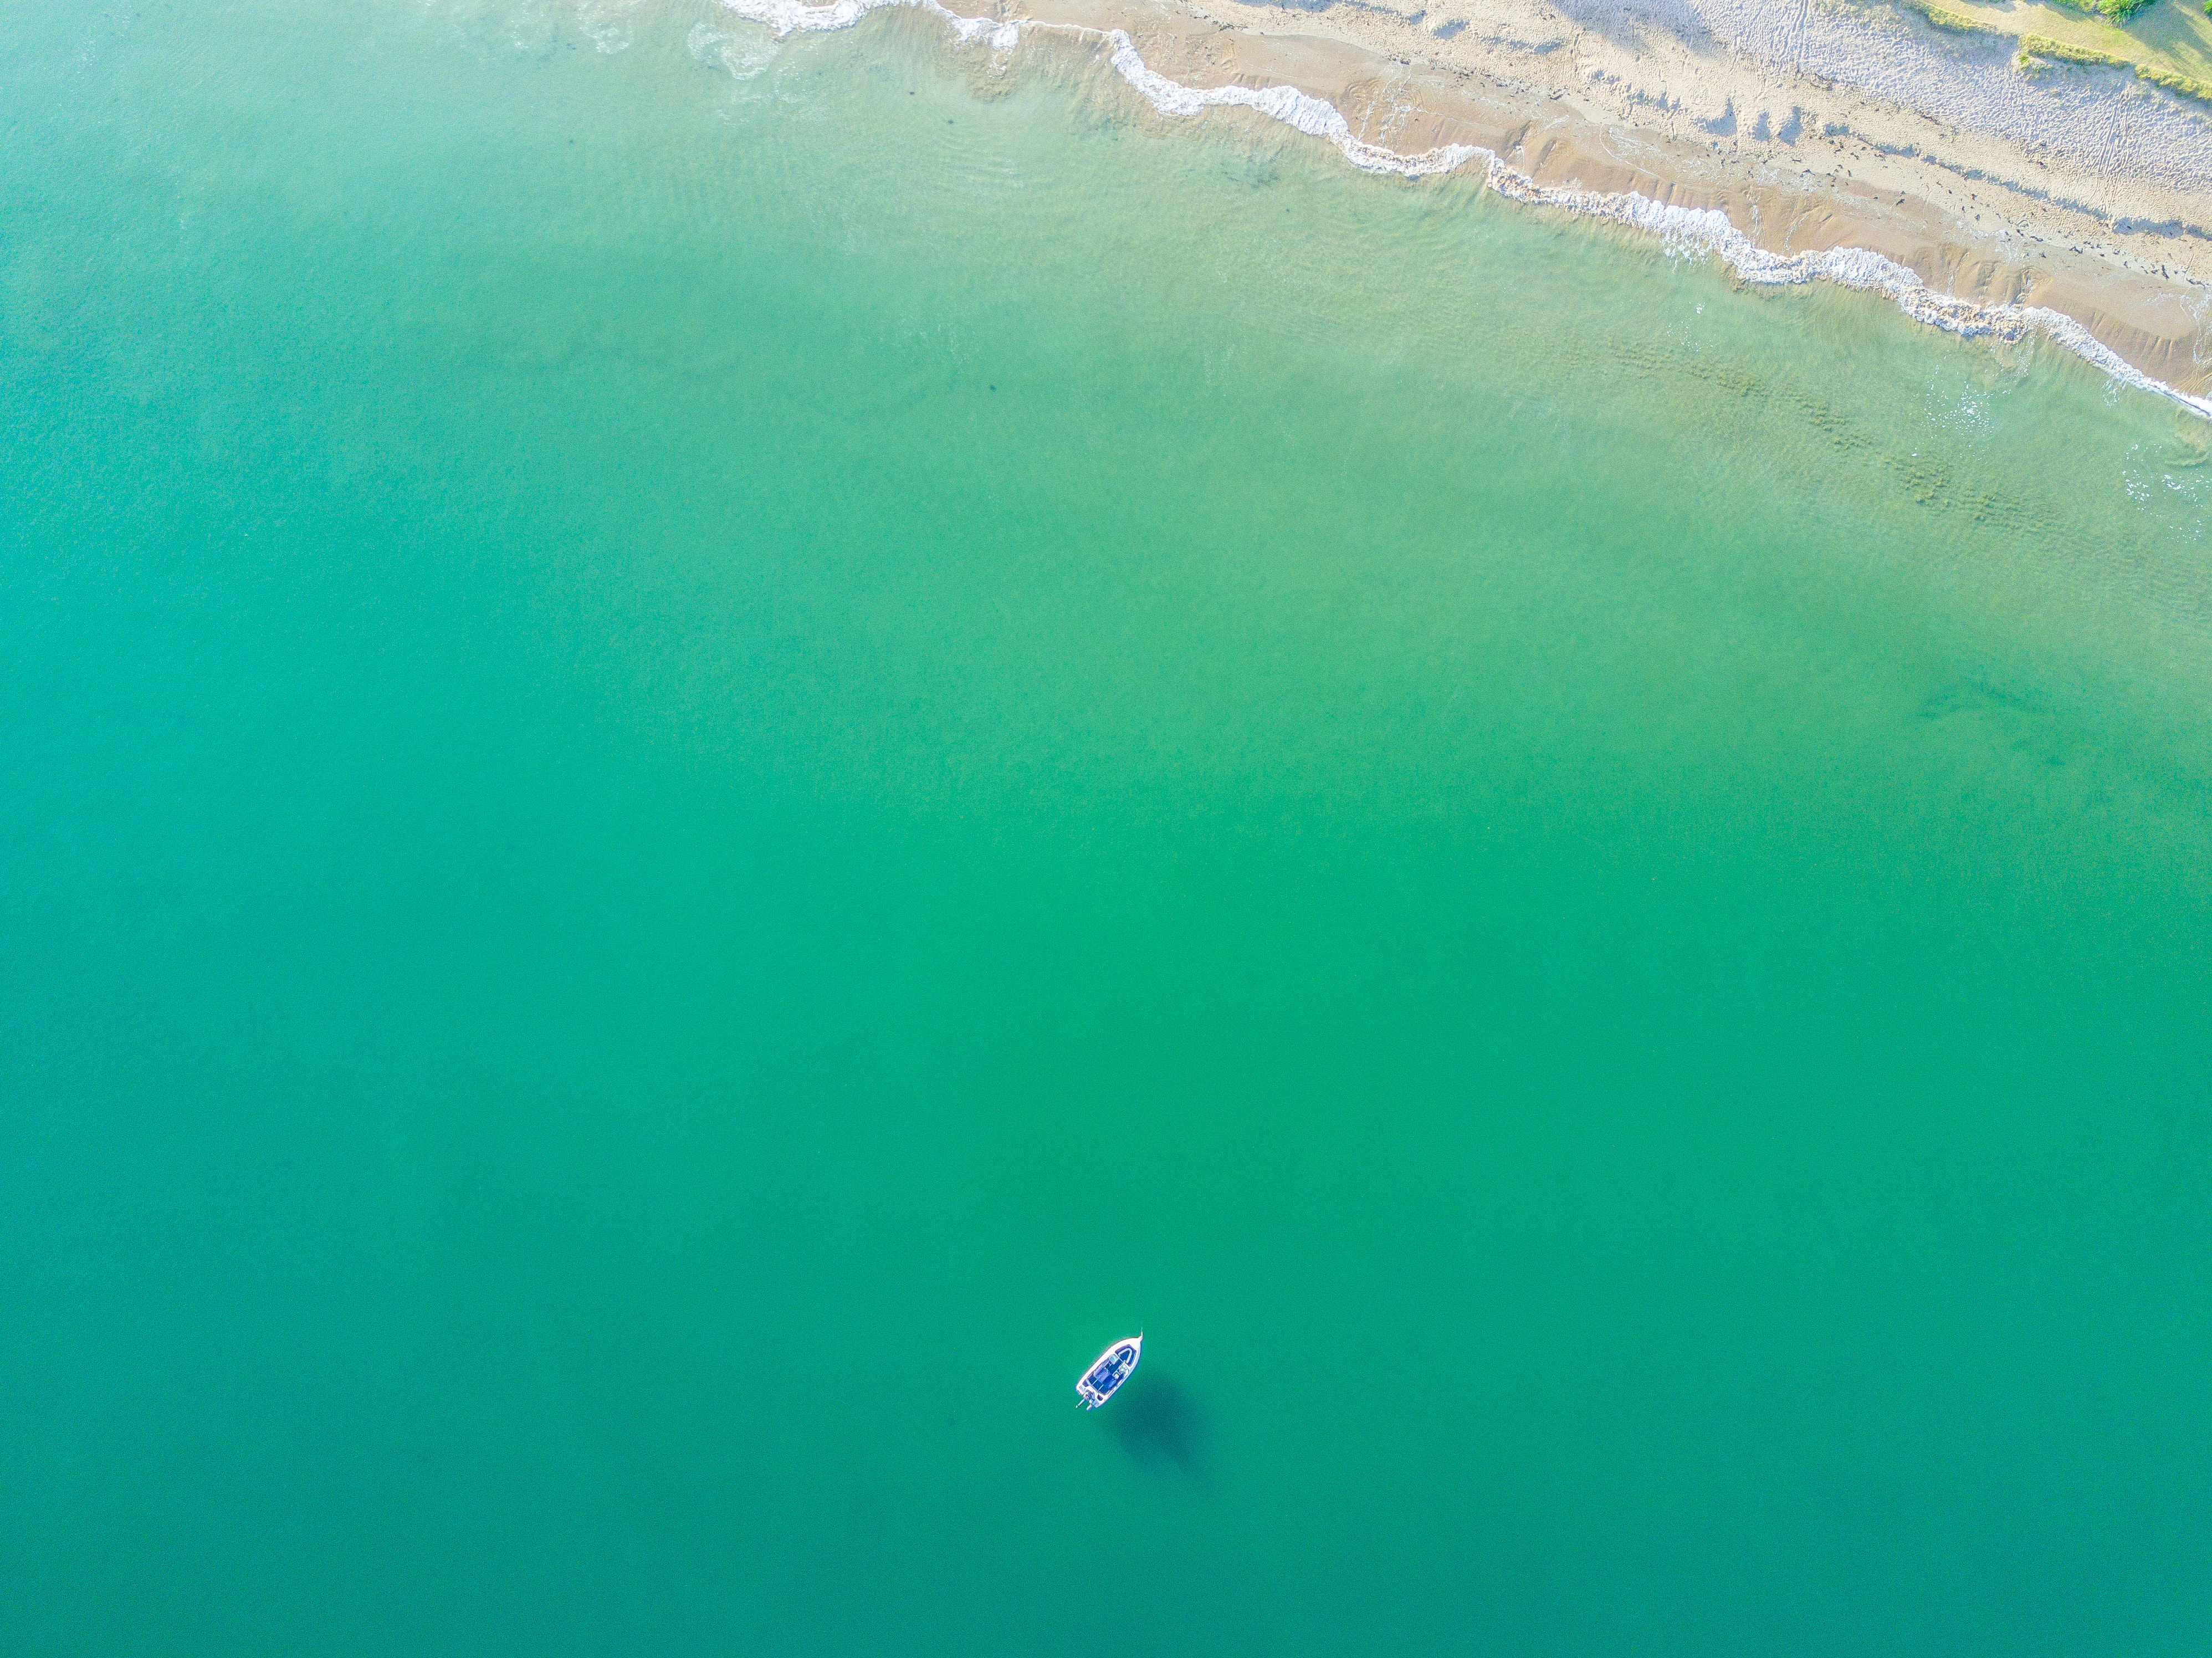 5401937 3992x2992 sea anchor pictures drone view 3992x2992